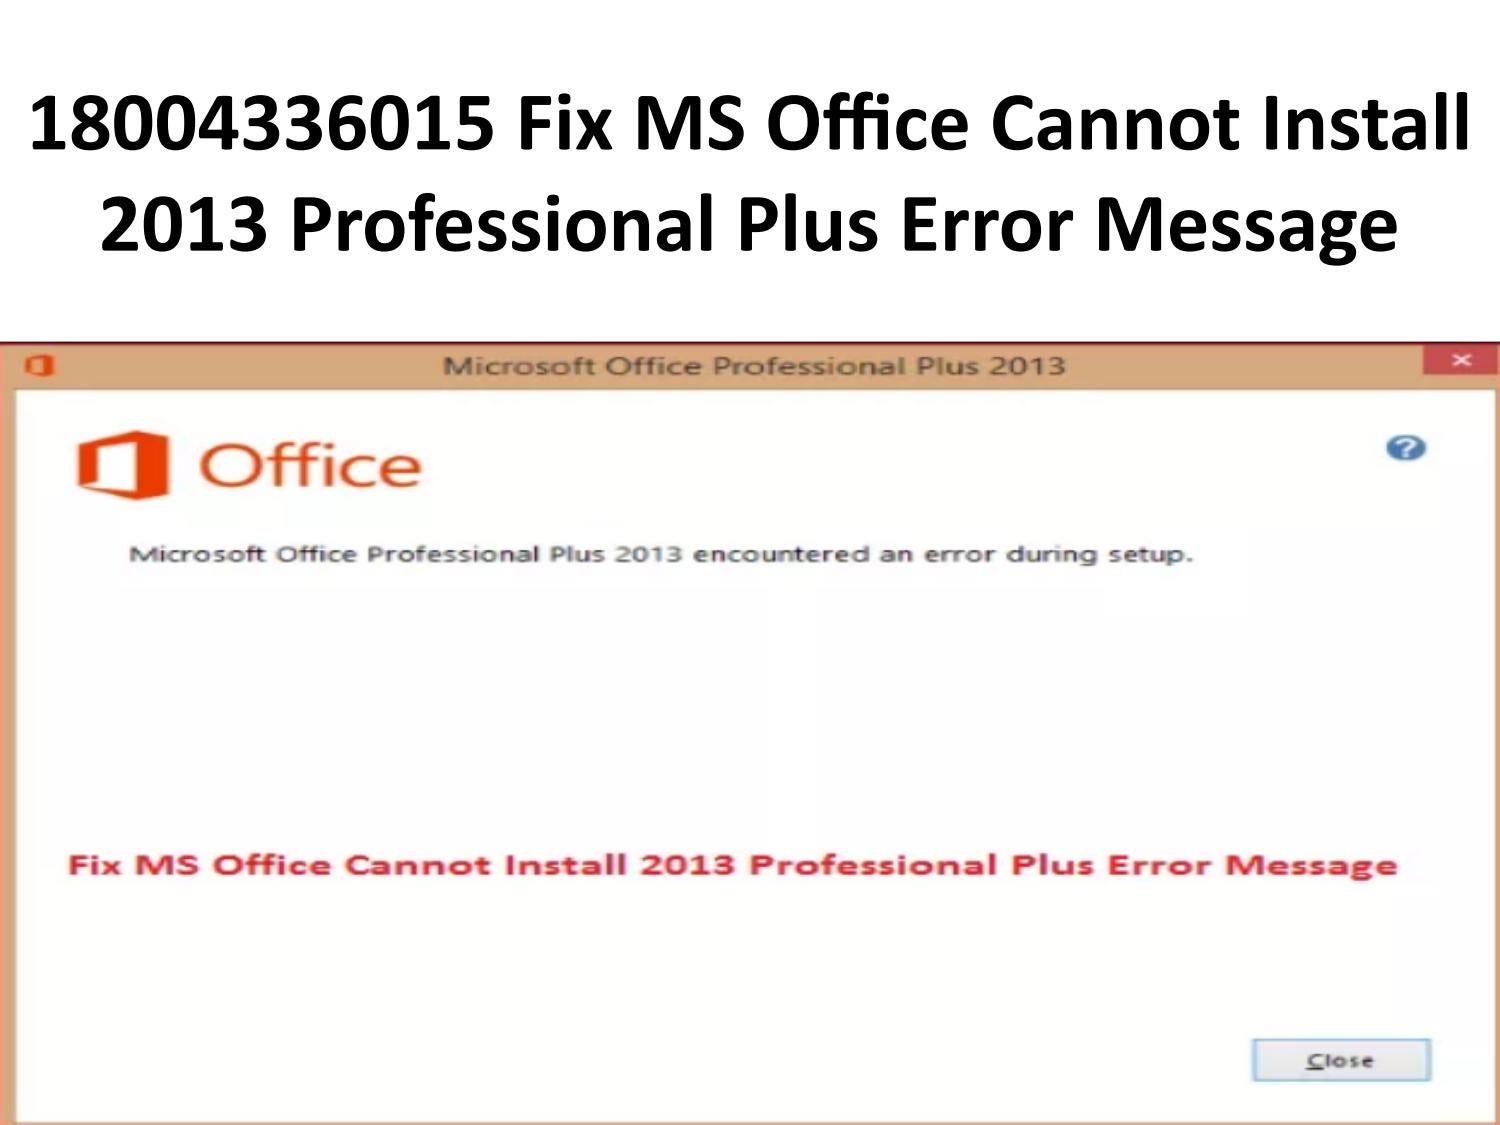 Microsoft Office 2013 Professional Plus 18004336015 Fix Ms Office Cannot Install 2013 Professional Plus